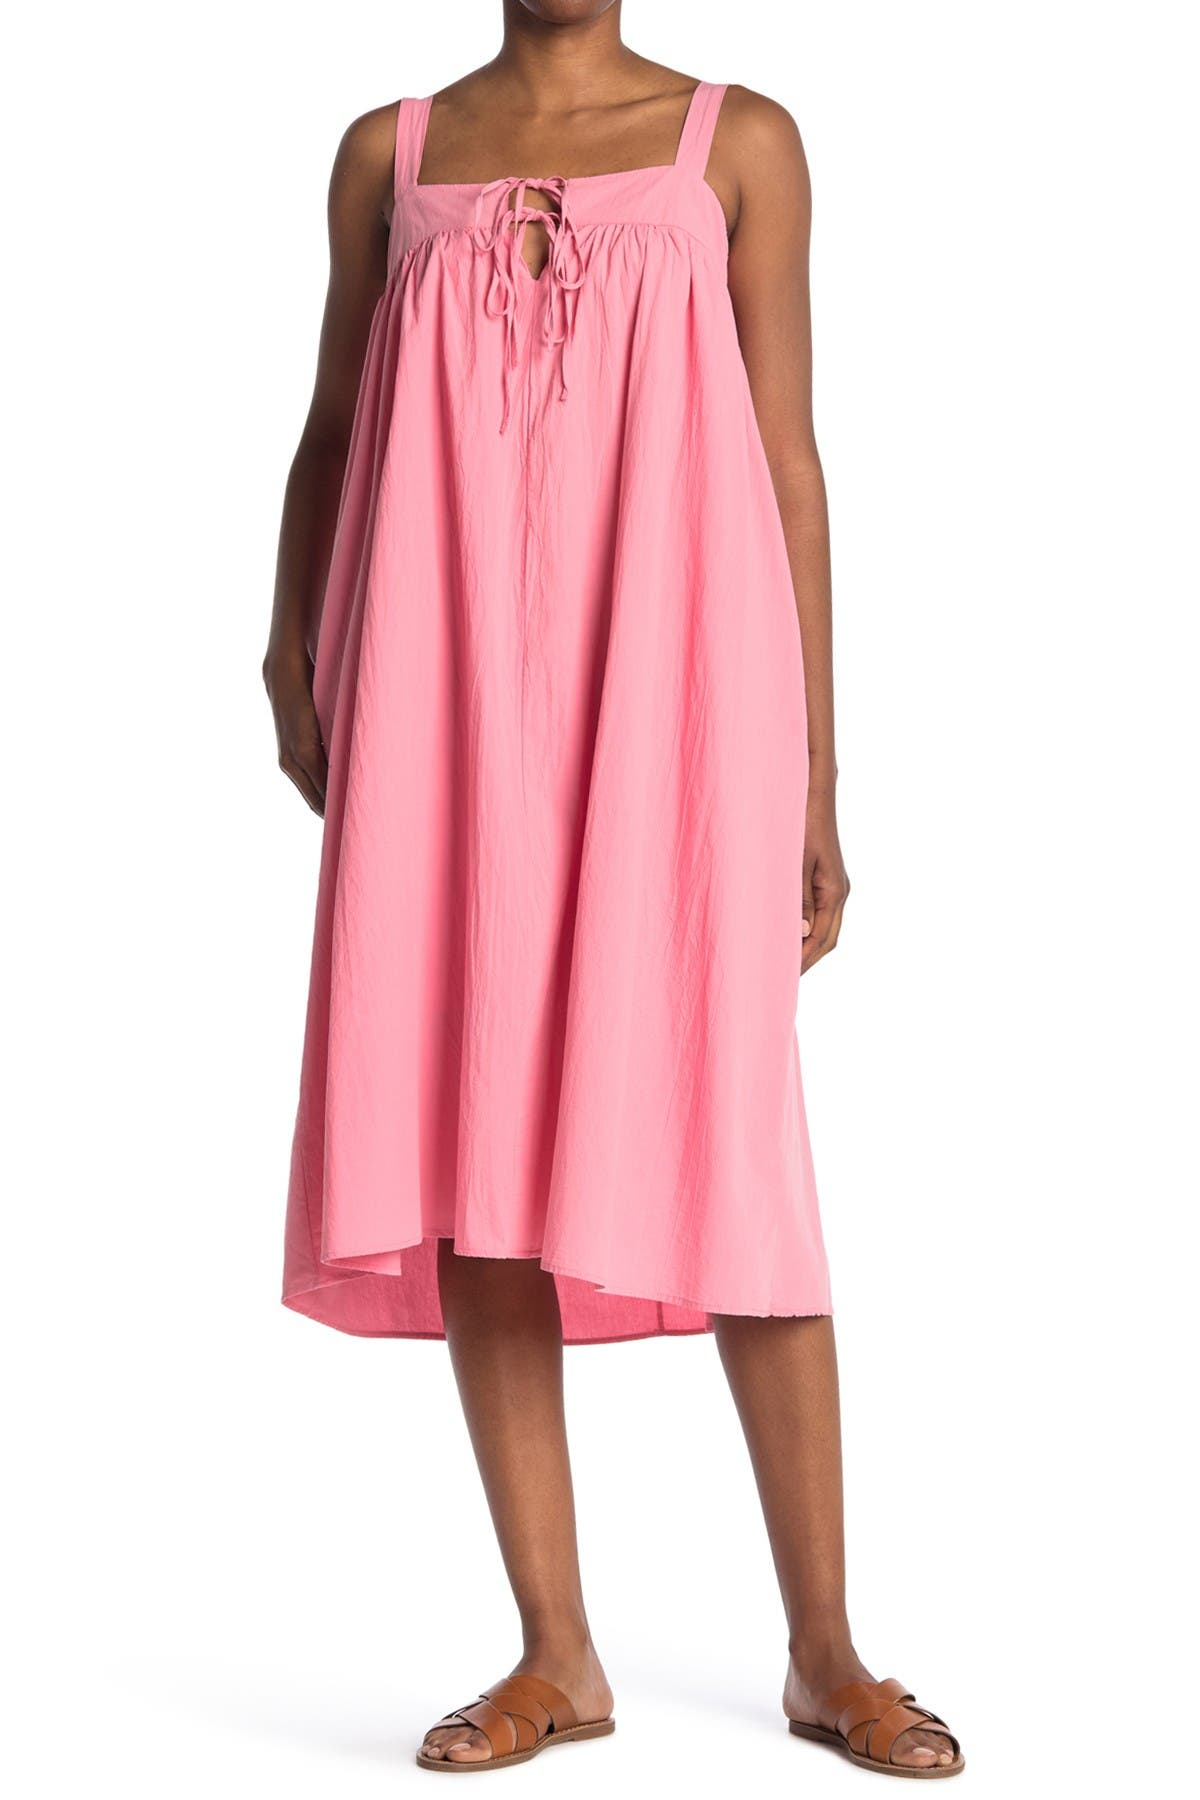 Image of STITCHDROP Adjustable Strap Tie Front Woven Dress